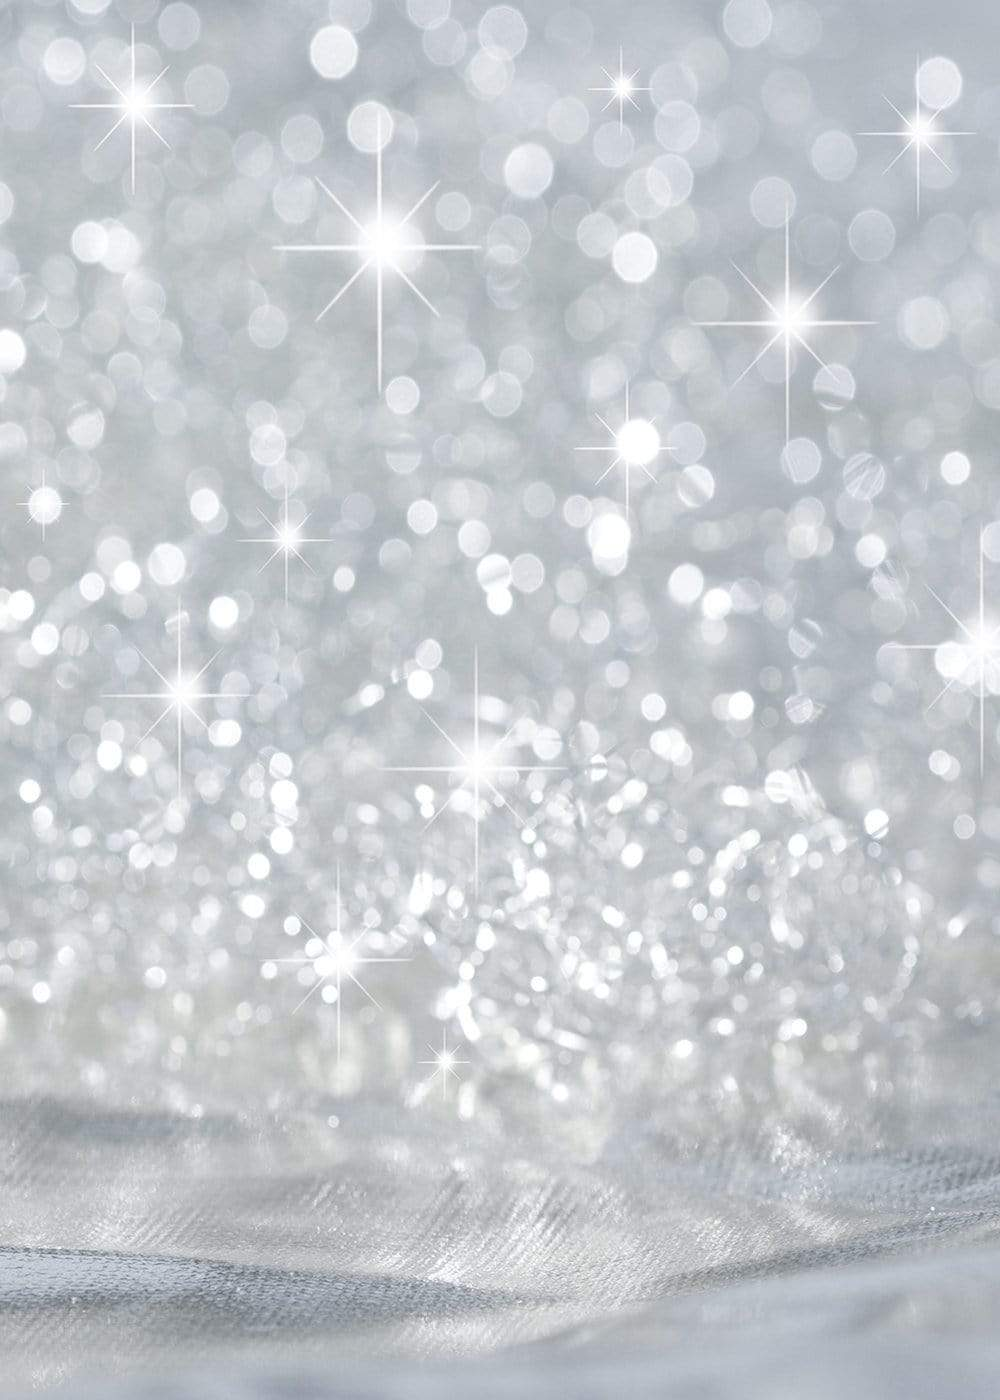 Load image into Gallery viewer, Katebackdrop£ºKate Silver Bokeh Photography Backdrops Glitter Stars Spots